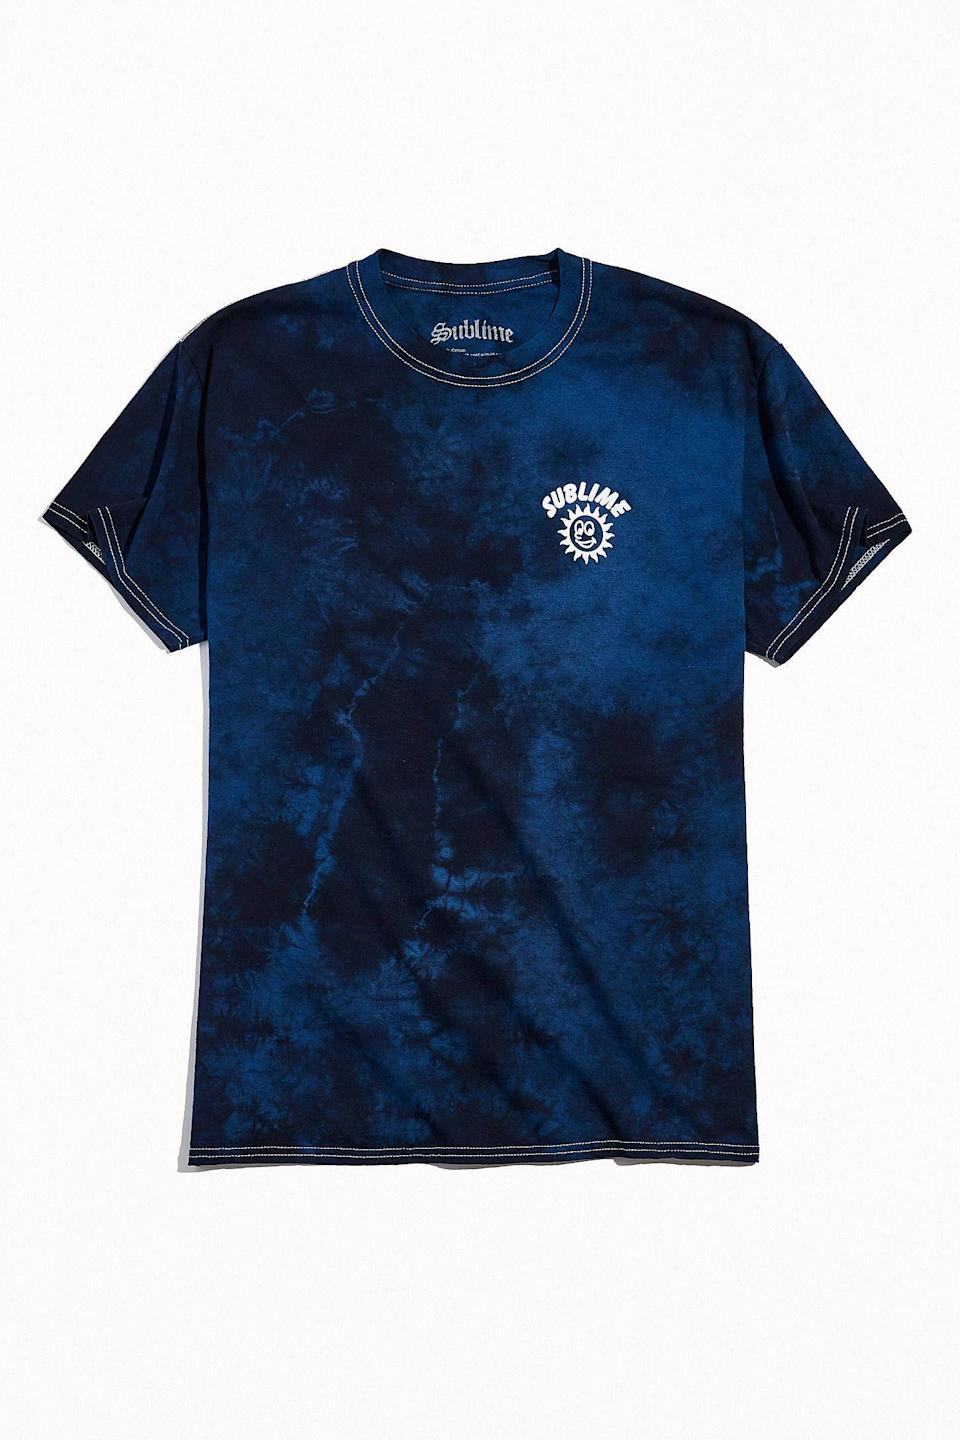 """<p><strong>Urban Outfitters</strong></p><p>urbanoutfitters.com</p><p><strong>$34.00</strong></p><p><a href=""""https://go.redirectingat.com?id=74968X1596630&url=https%3A%2F%2Fwww.urbanoutfitters.com%2Fshop%2Fsublime-lbc-crystal-wash-tee&sref=https%3A%2F%2Fwww.menshealth.com%2Fstyle%2Fg35864339%2Fbest-graphic-t-shirts-men%2F"""" rel=""""nofollow noopener"""" target=""""_blank"""" data-ylk=""""slk:BUY IT HERE"""" class=""""link rapid-noclick-resp"""">BUY IT HERE</a></p><p>Music graphic tees are a classic, and this is a great example of how to keep it feeling fresh. A small graphic on a dark tie-dye tee is the expert balance of old and new. </p>"""